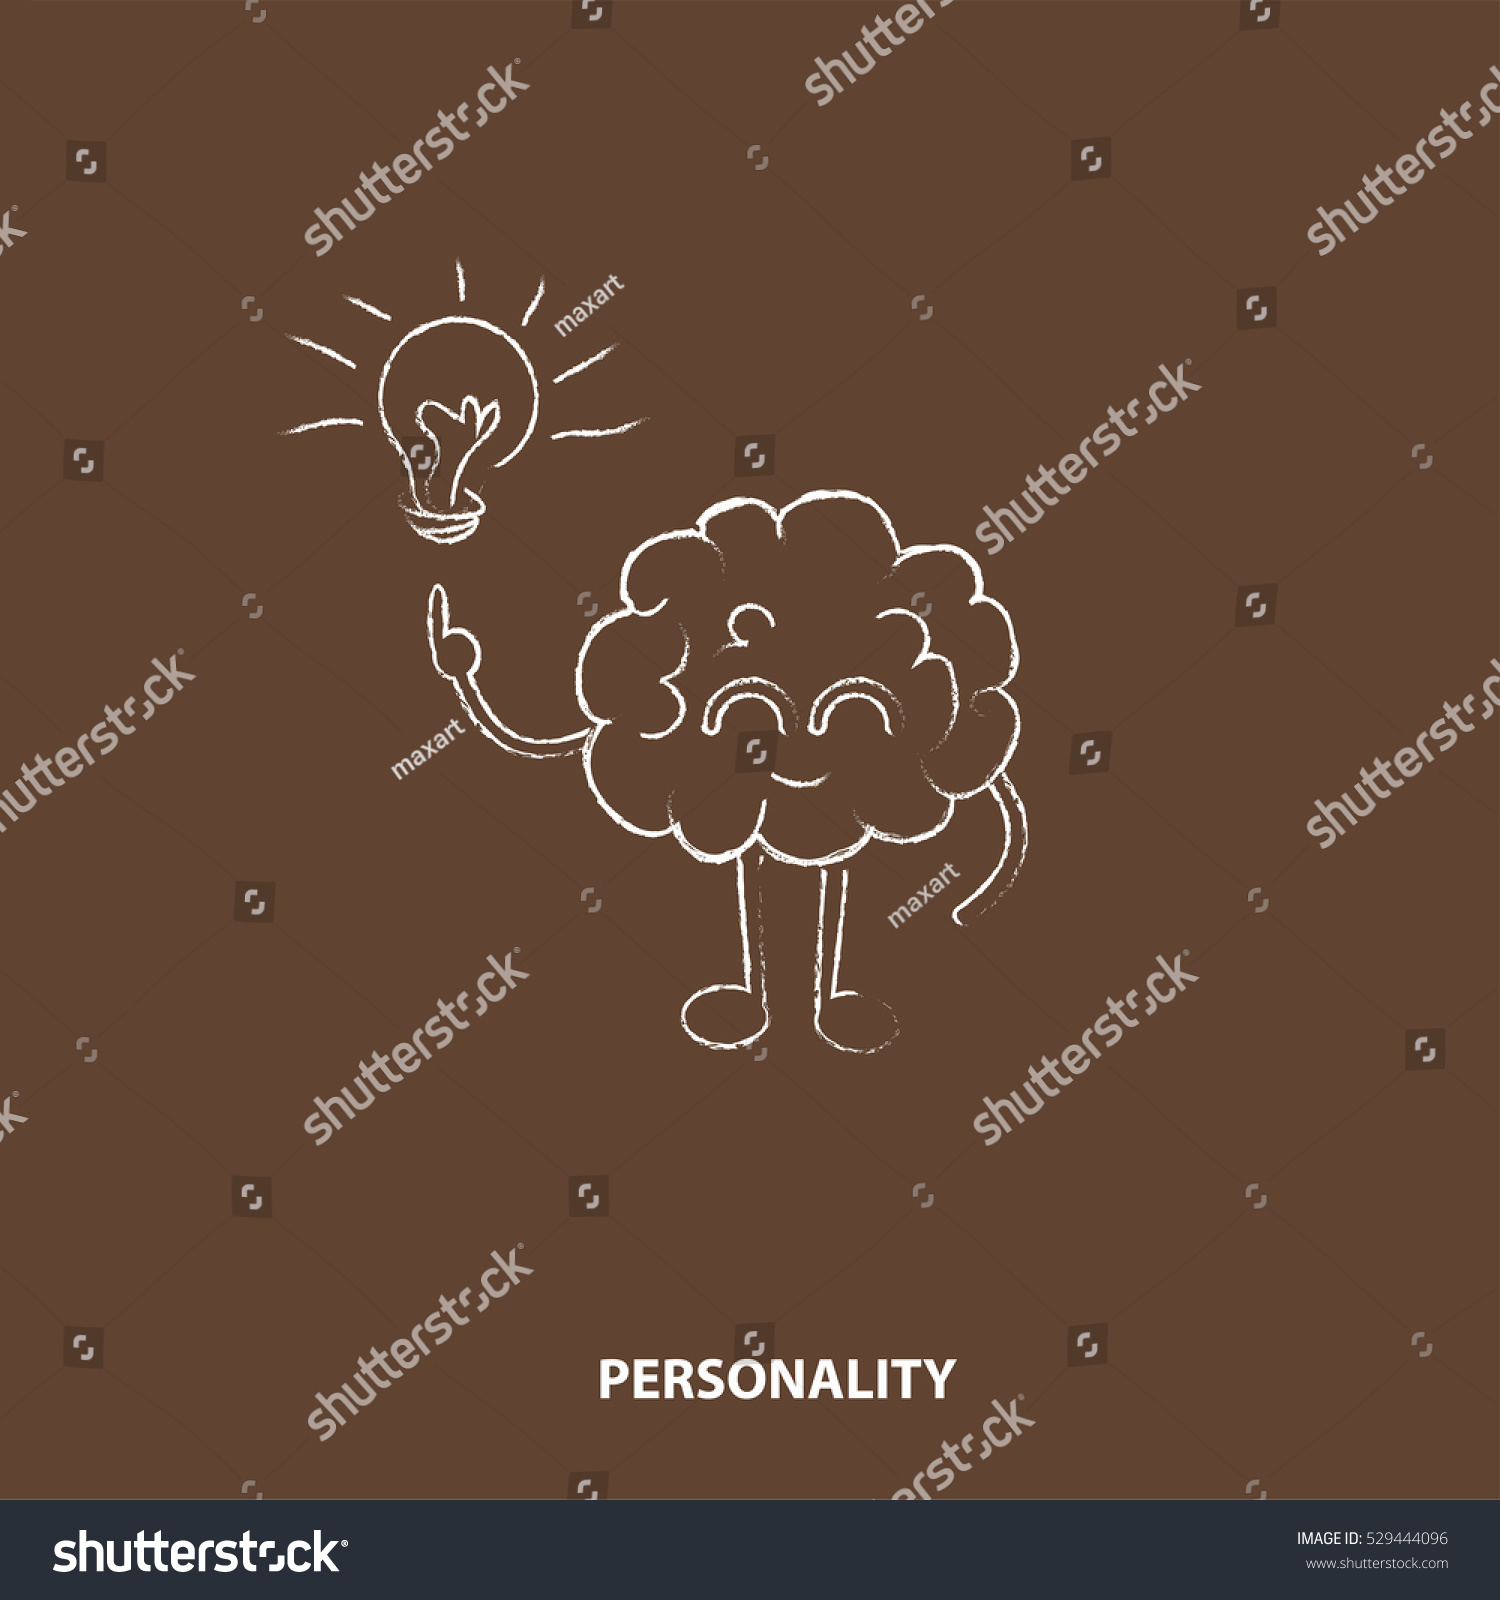 how to become smart personality